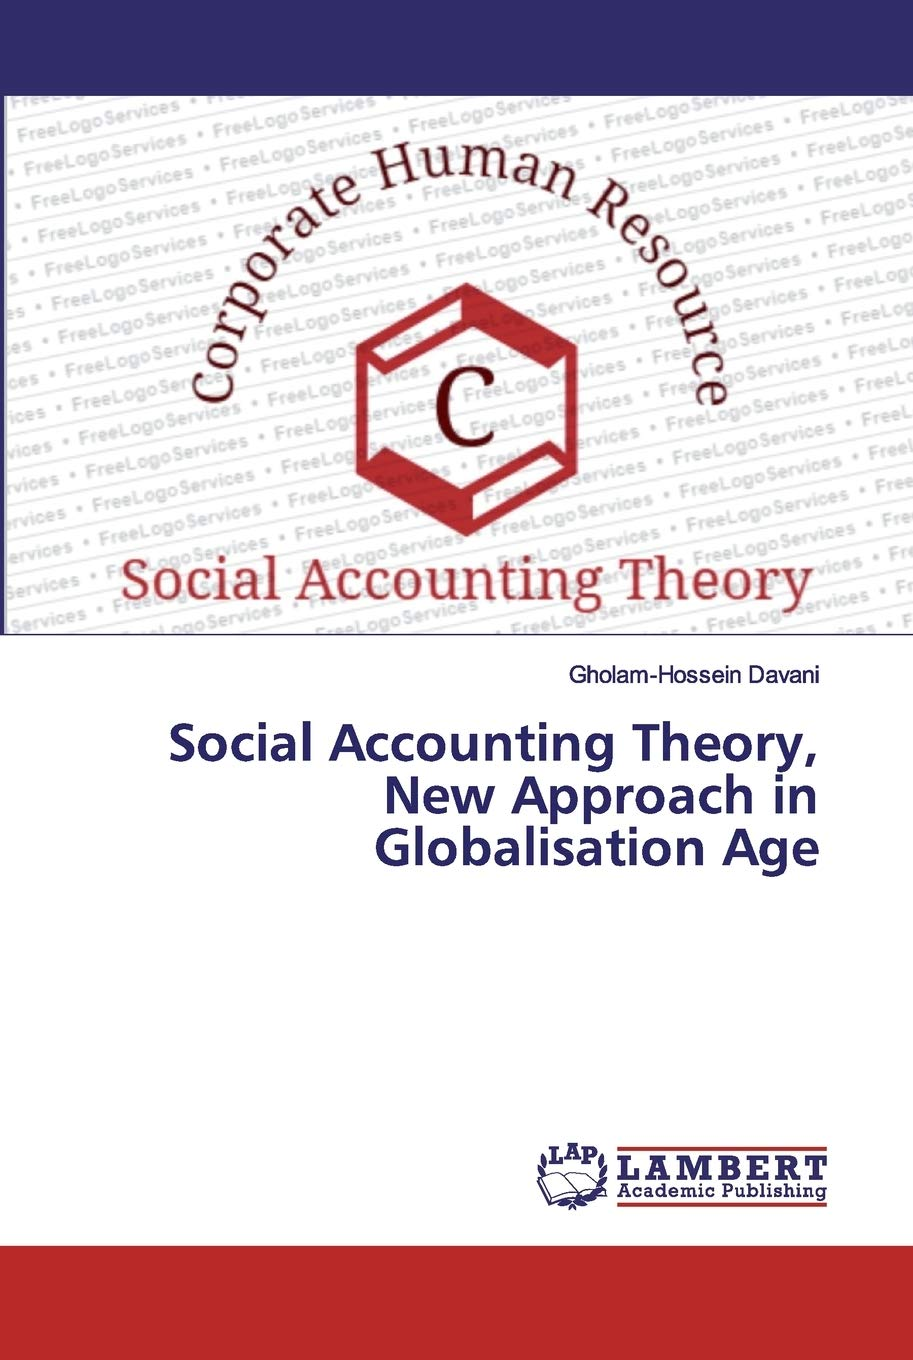 Social Accounting Theory, New Approach in Globalisation Age: Davani,  Gholam-Hossein: 9786200086273: Books - Amazon.ca